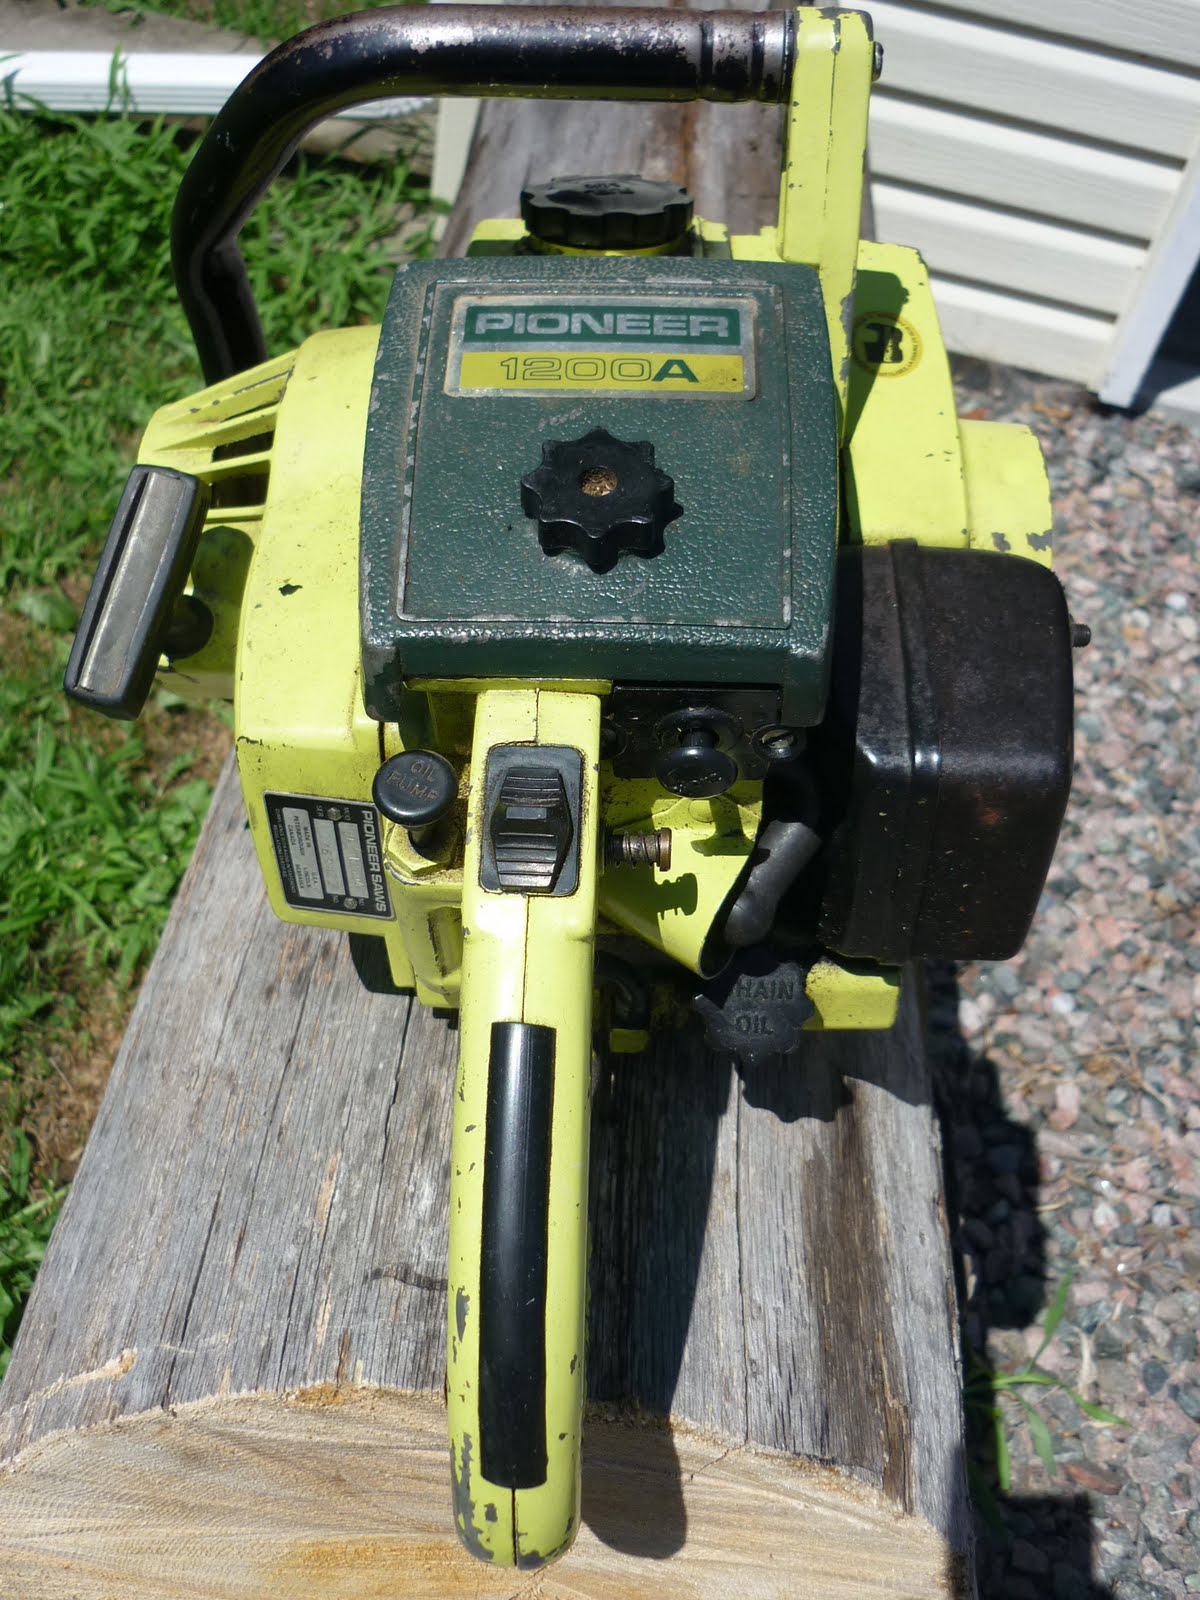 VINTAGE CHAINSAW COLLECTION: PIONEER 1200 A